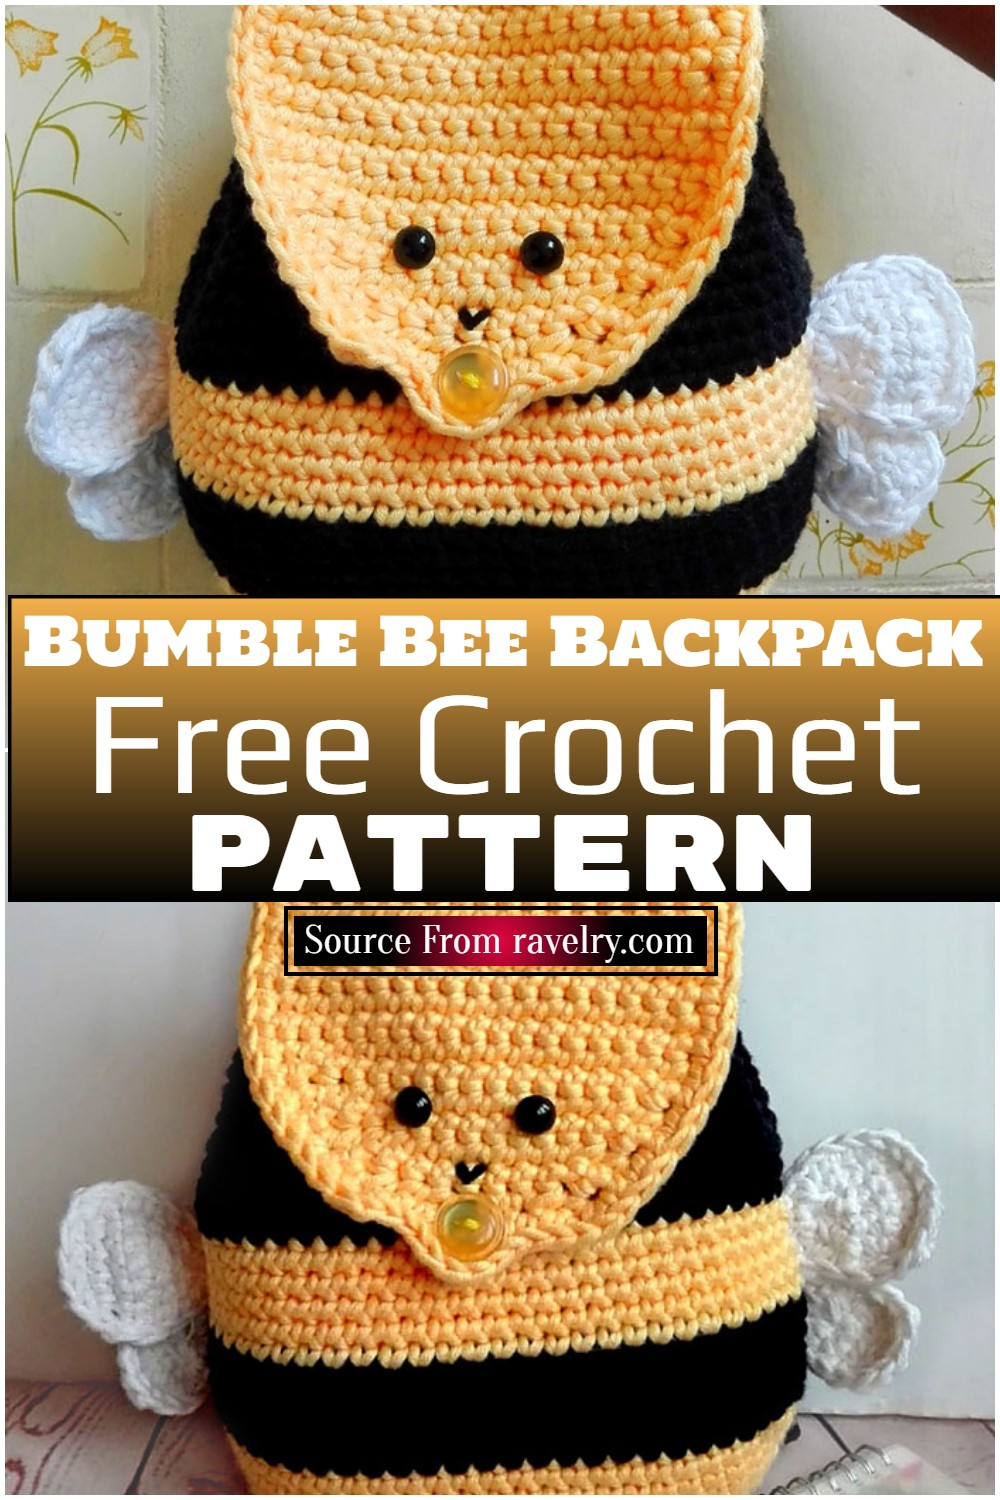 Free Crochet Bumble Bee Backpack Pattern